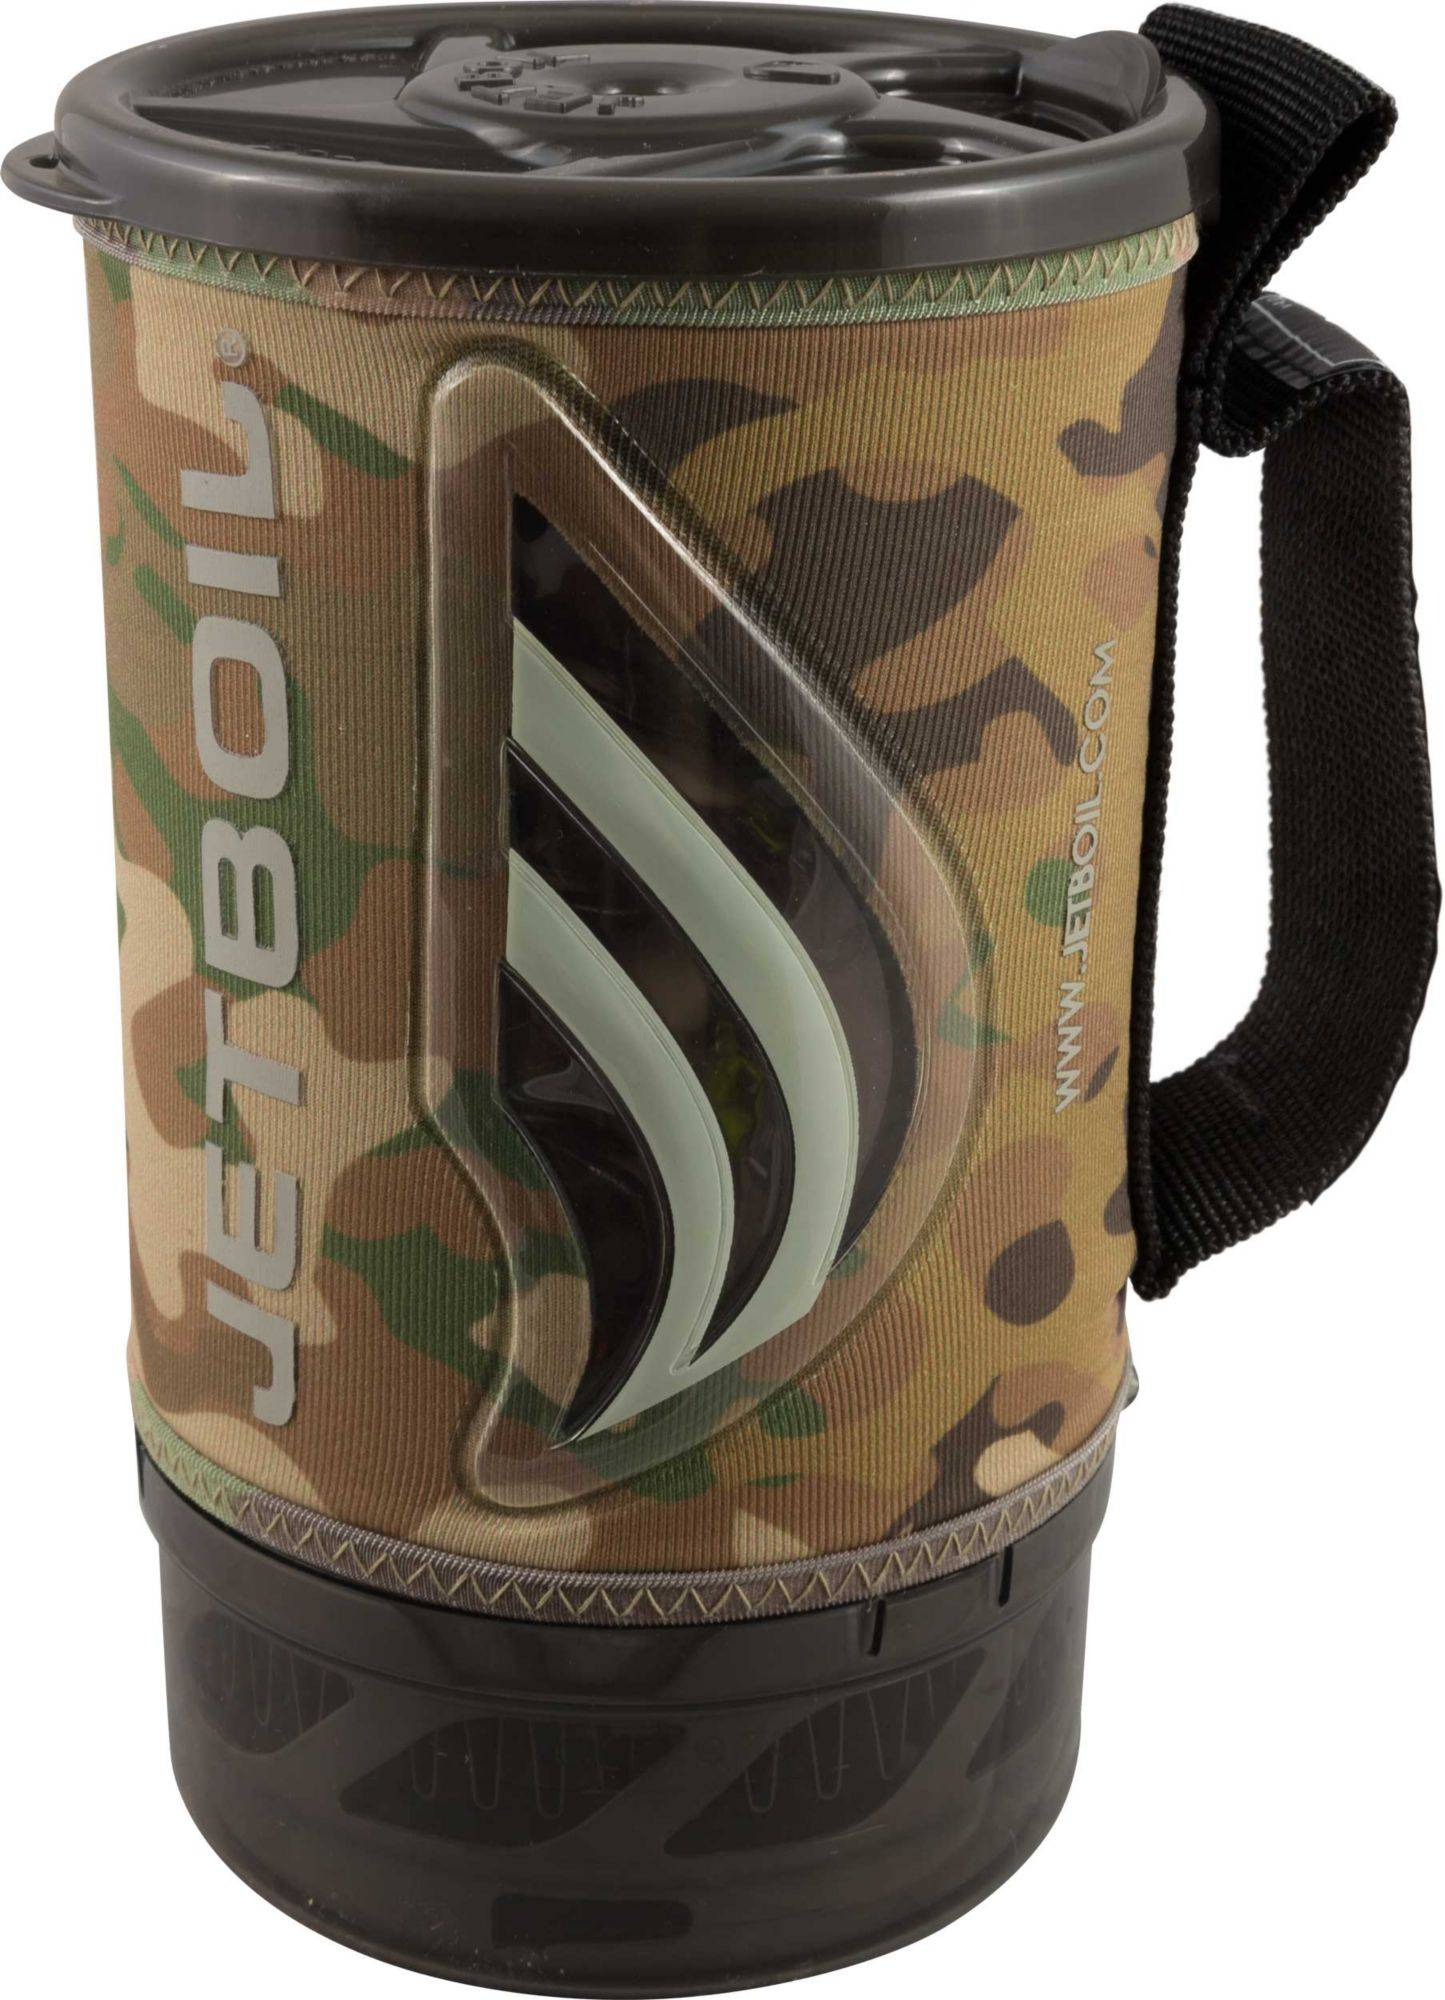 Jetboil Flash Cooking System, Camo